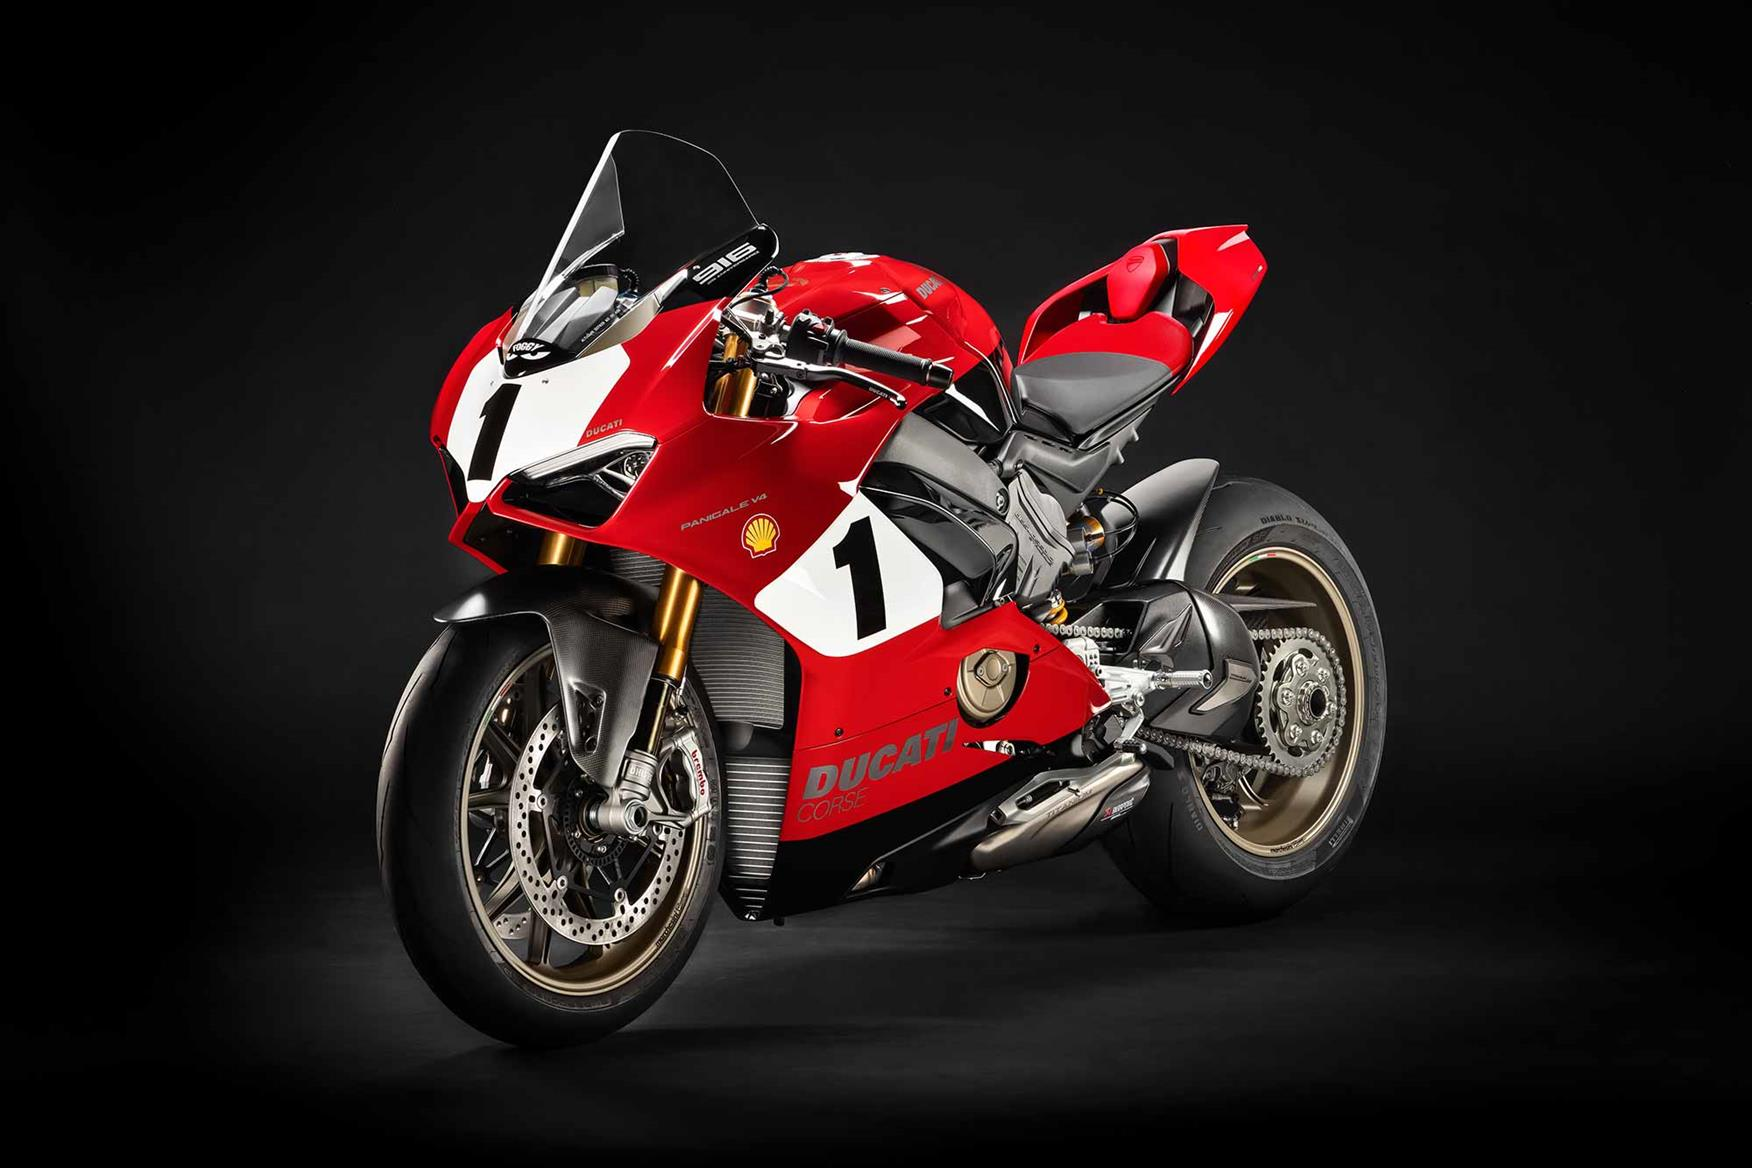 The bike pays tribute to the 1999 Ducati 996 WSB bike